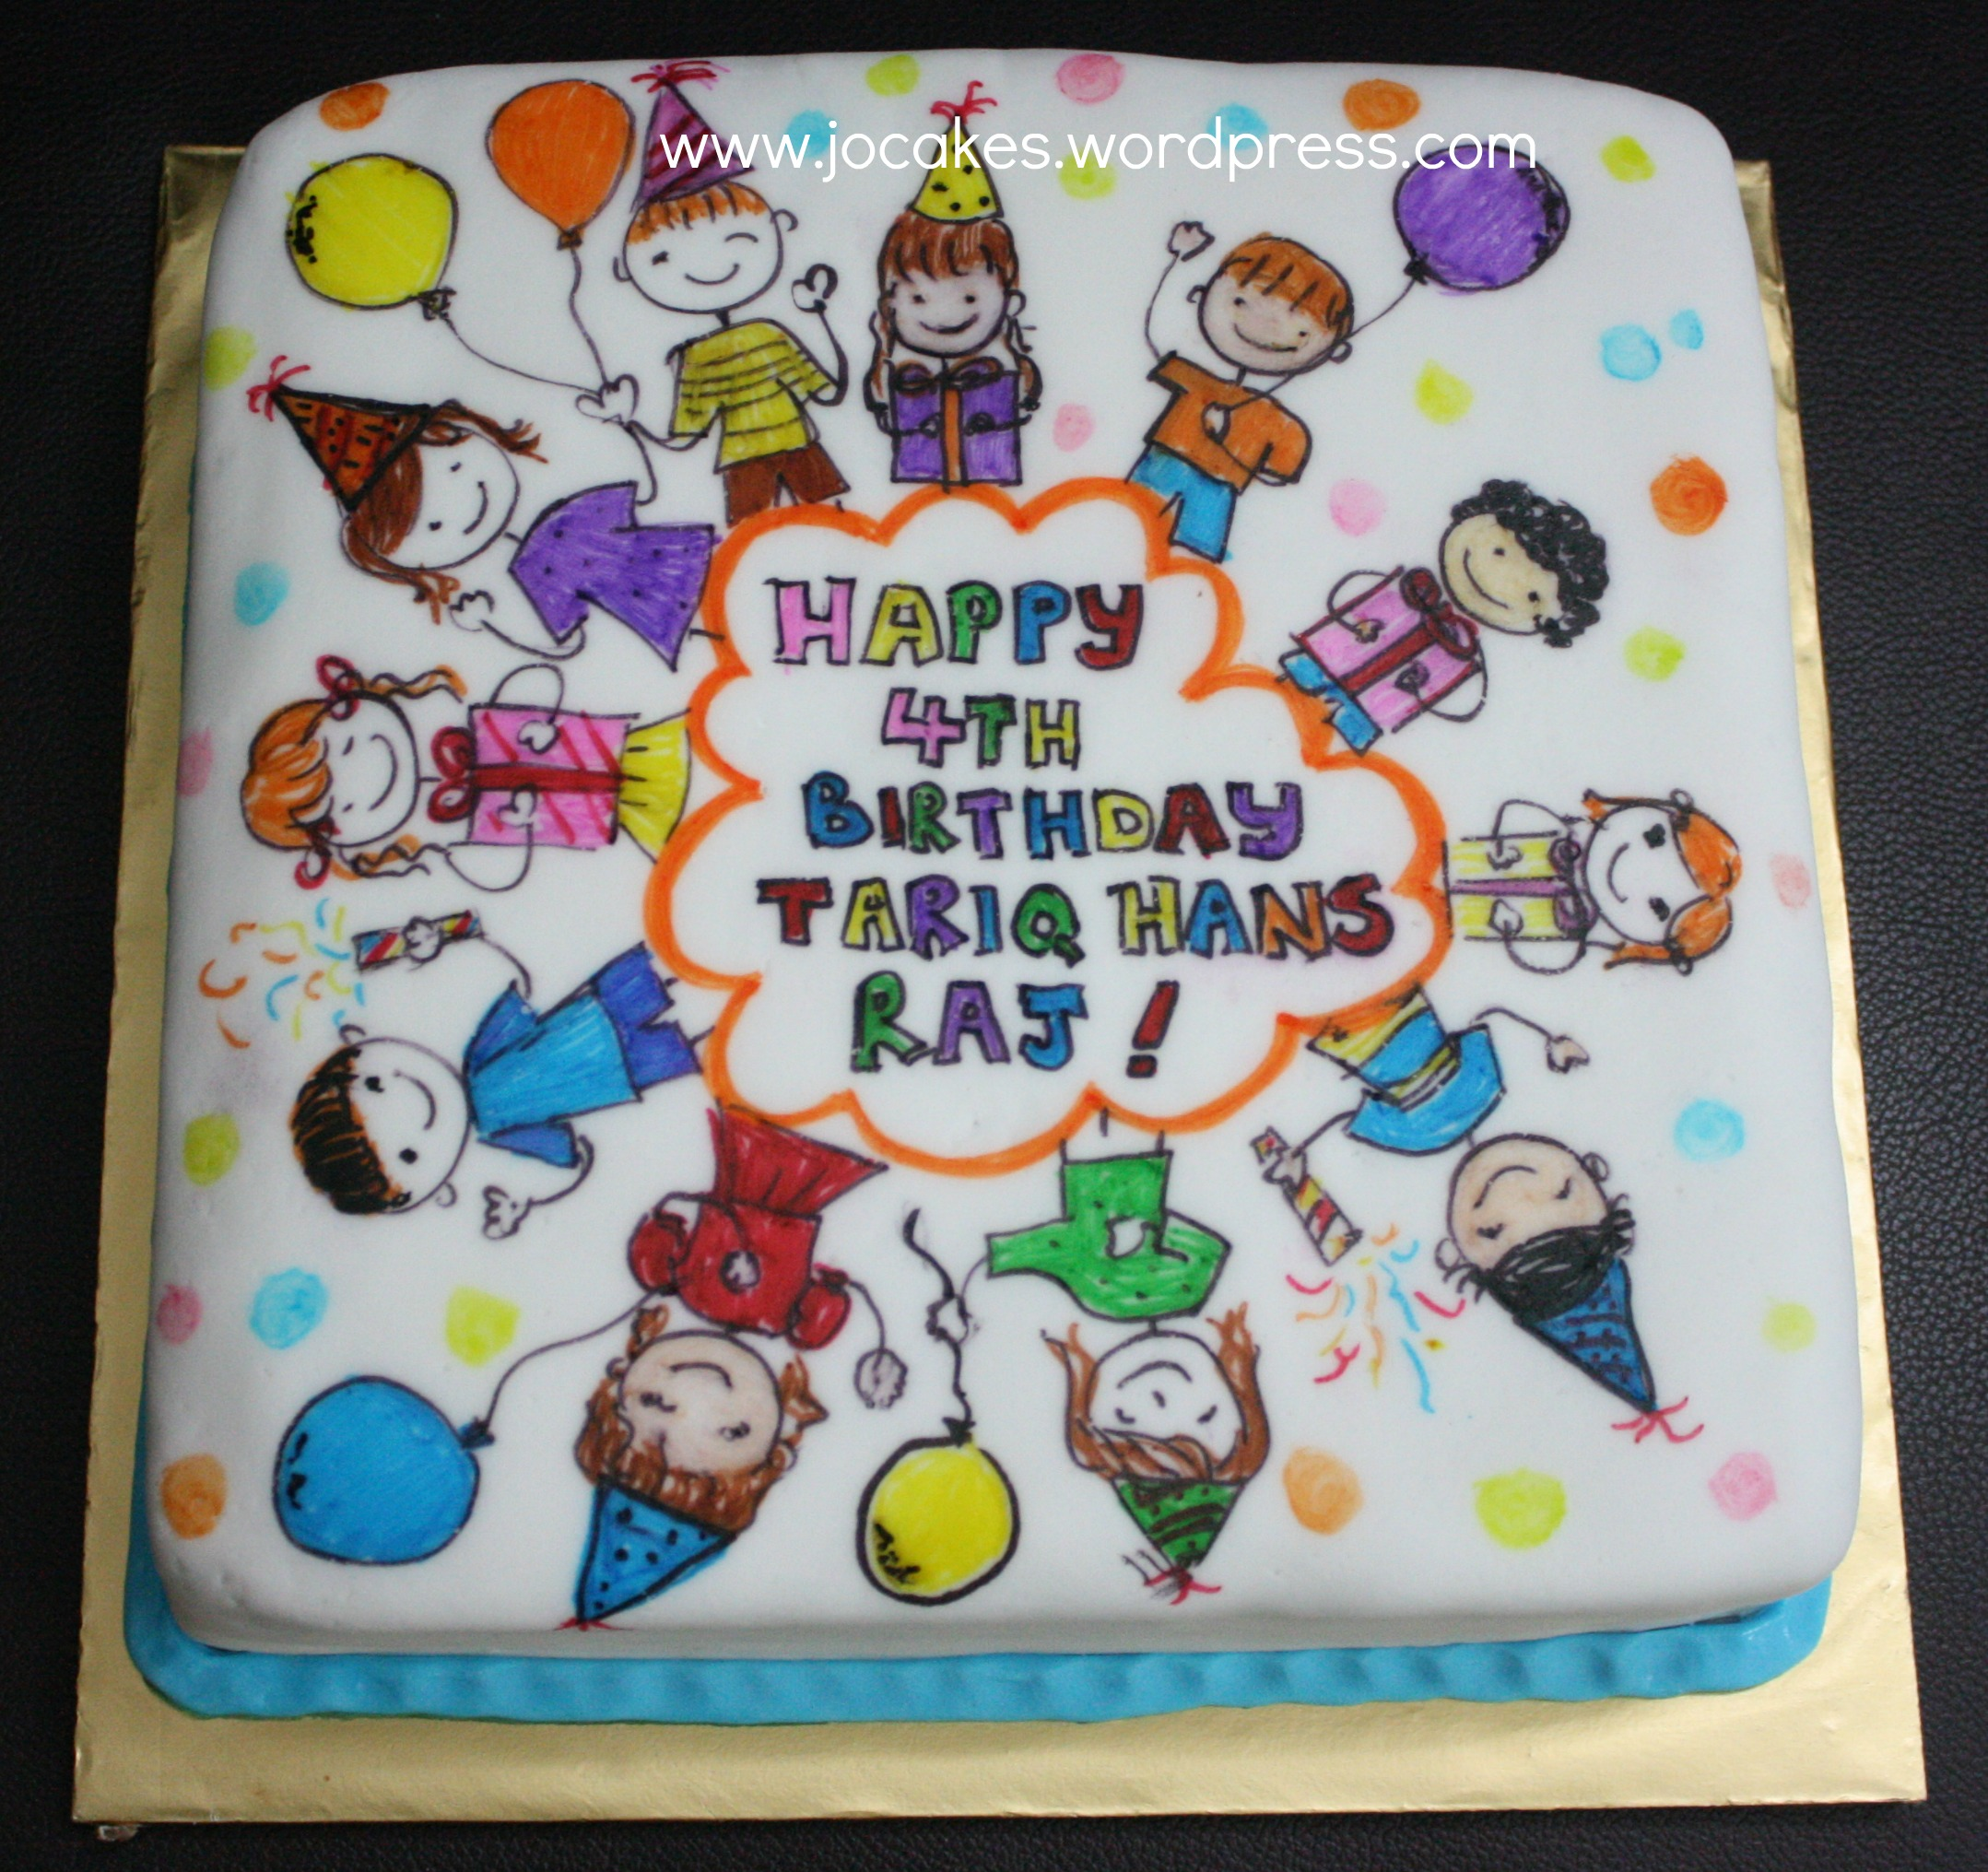 Cartoon Clipart Cake For 4 Year Old Boy    Jocakes